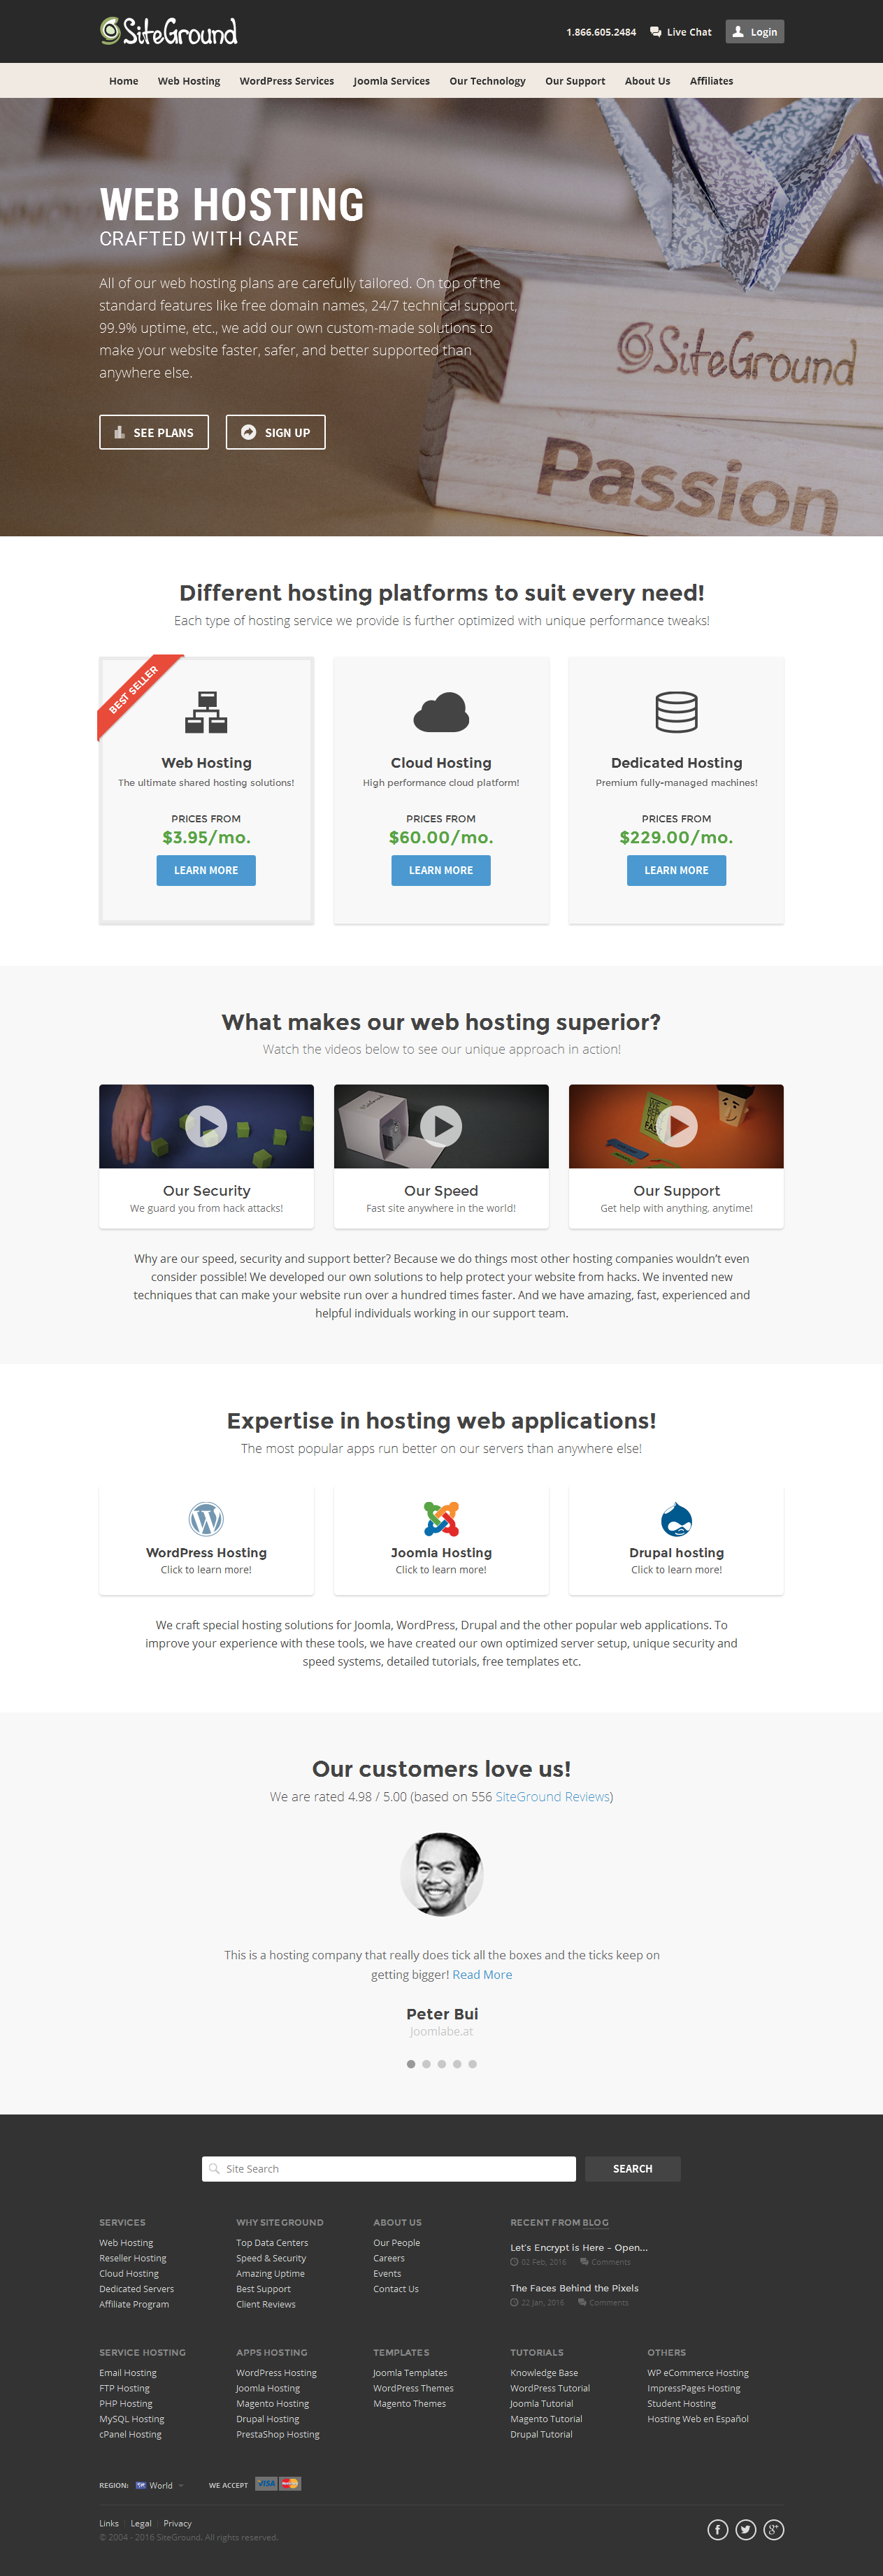 SiteGround- Quality-Crafted Hosting Services - falconhive